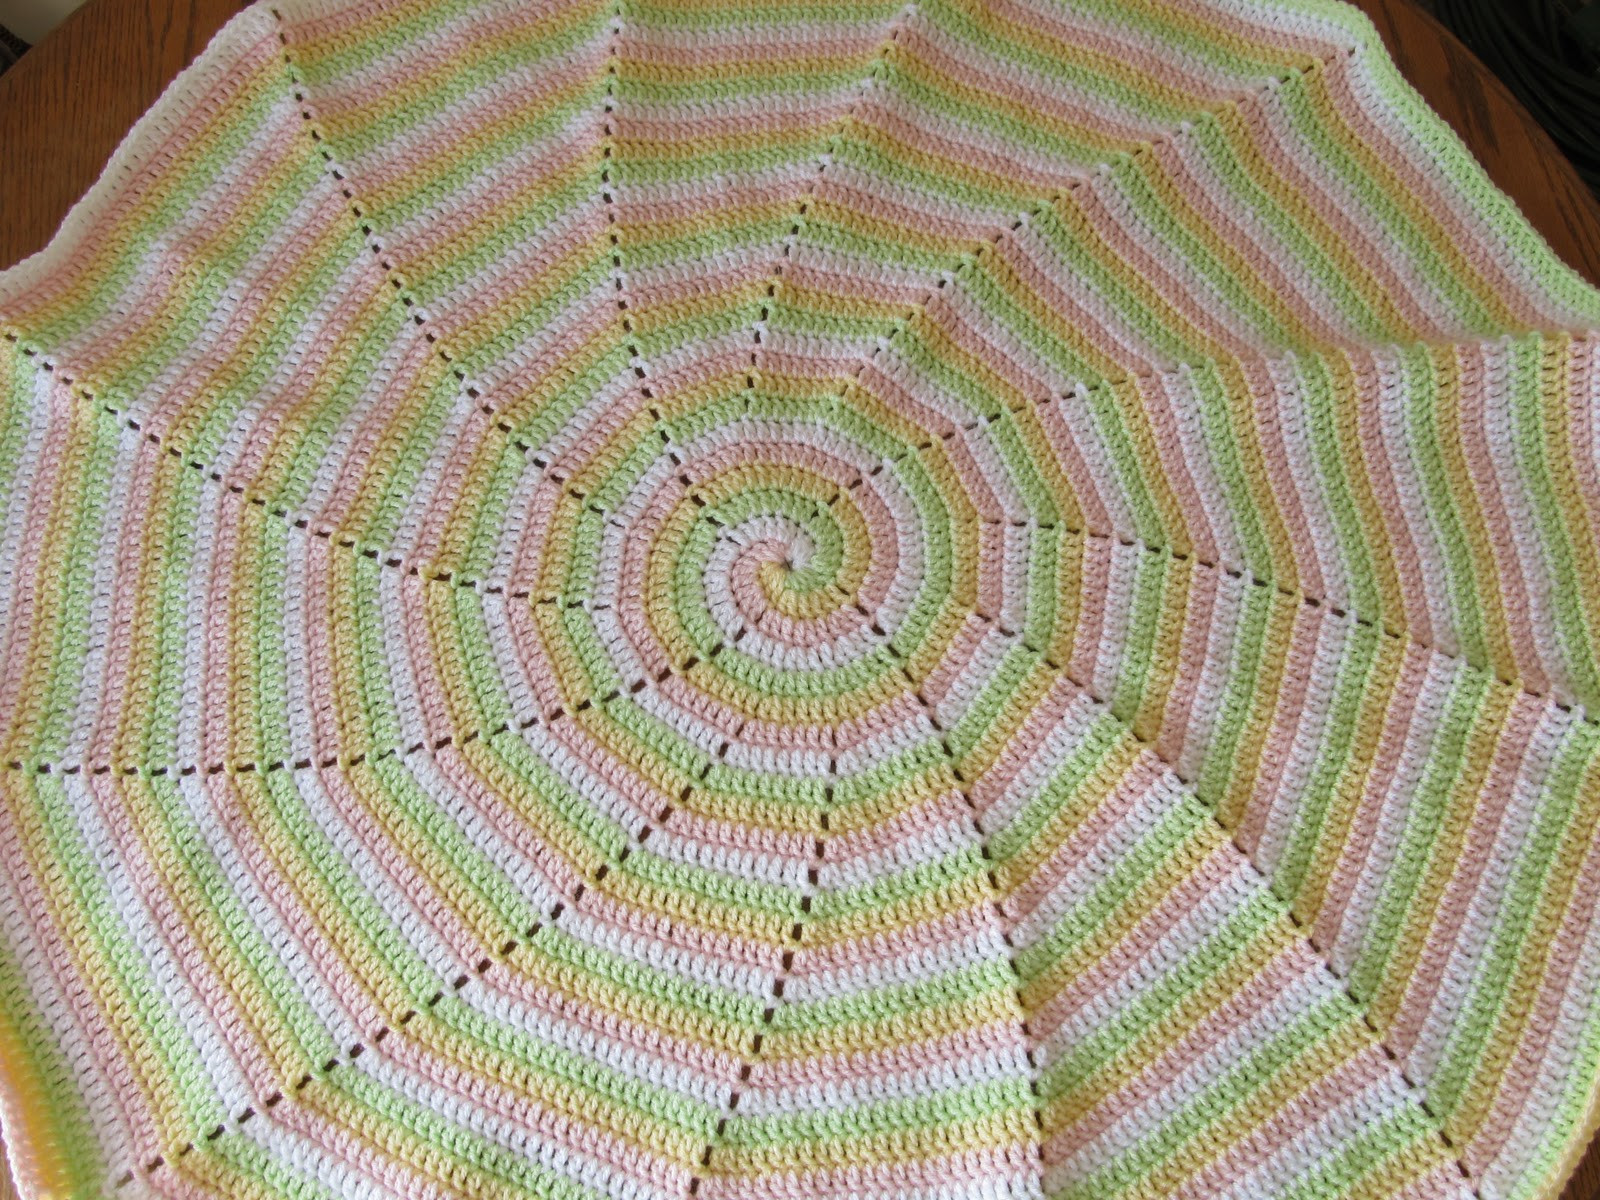 Lovely Smoothfox Crochet and Knit Smoothfox S Four Color Spiral Crochet Spiral Blanket Of Amazing 49 Models Crochet Spiral Blanket